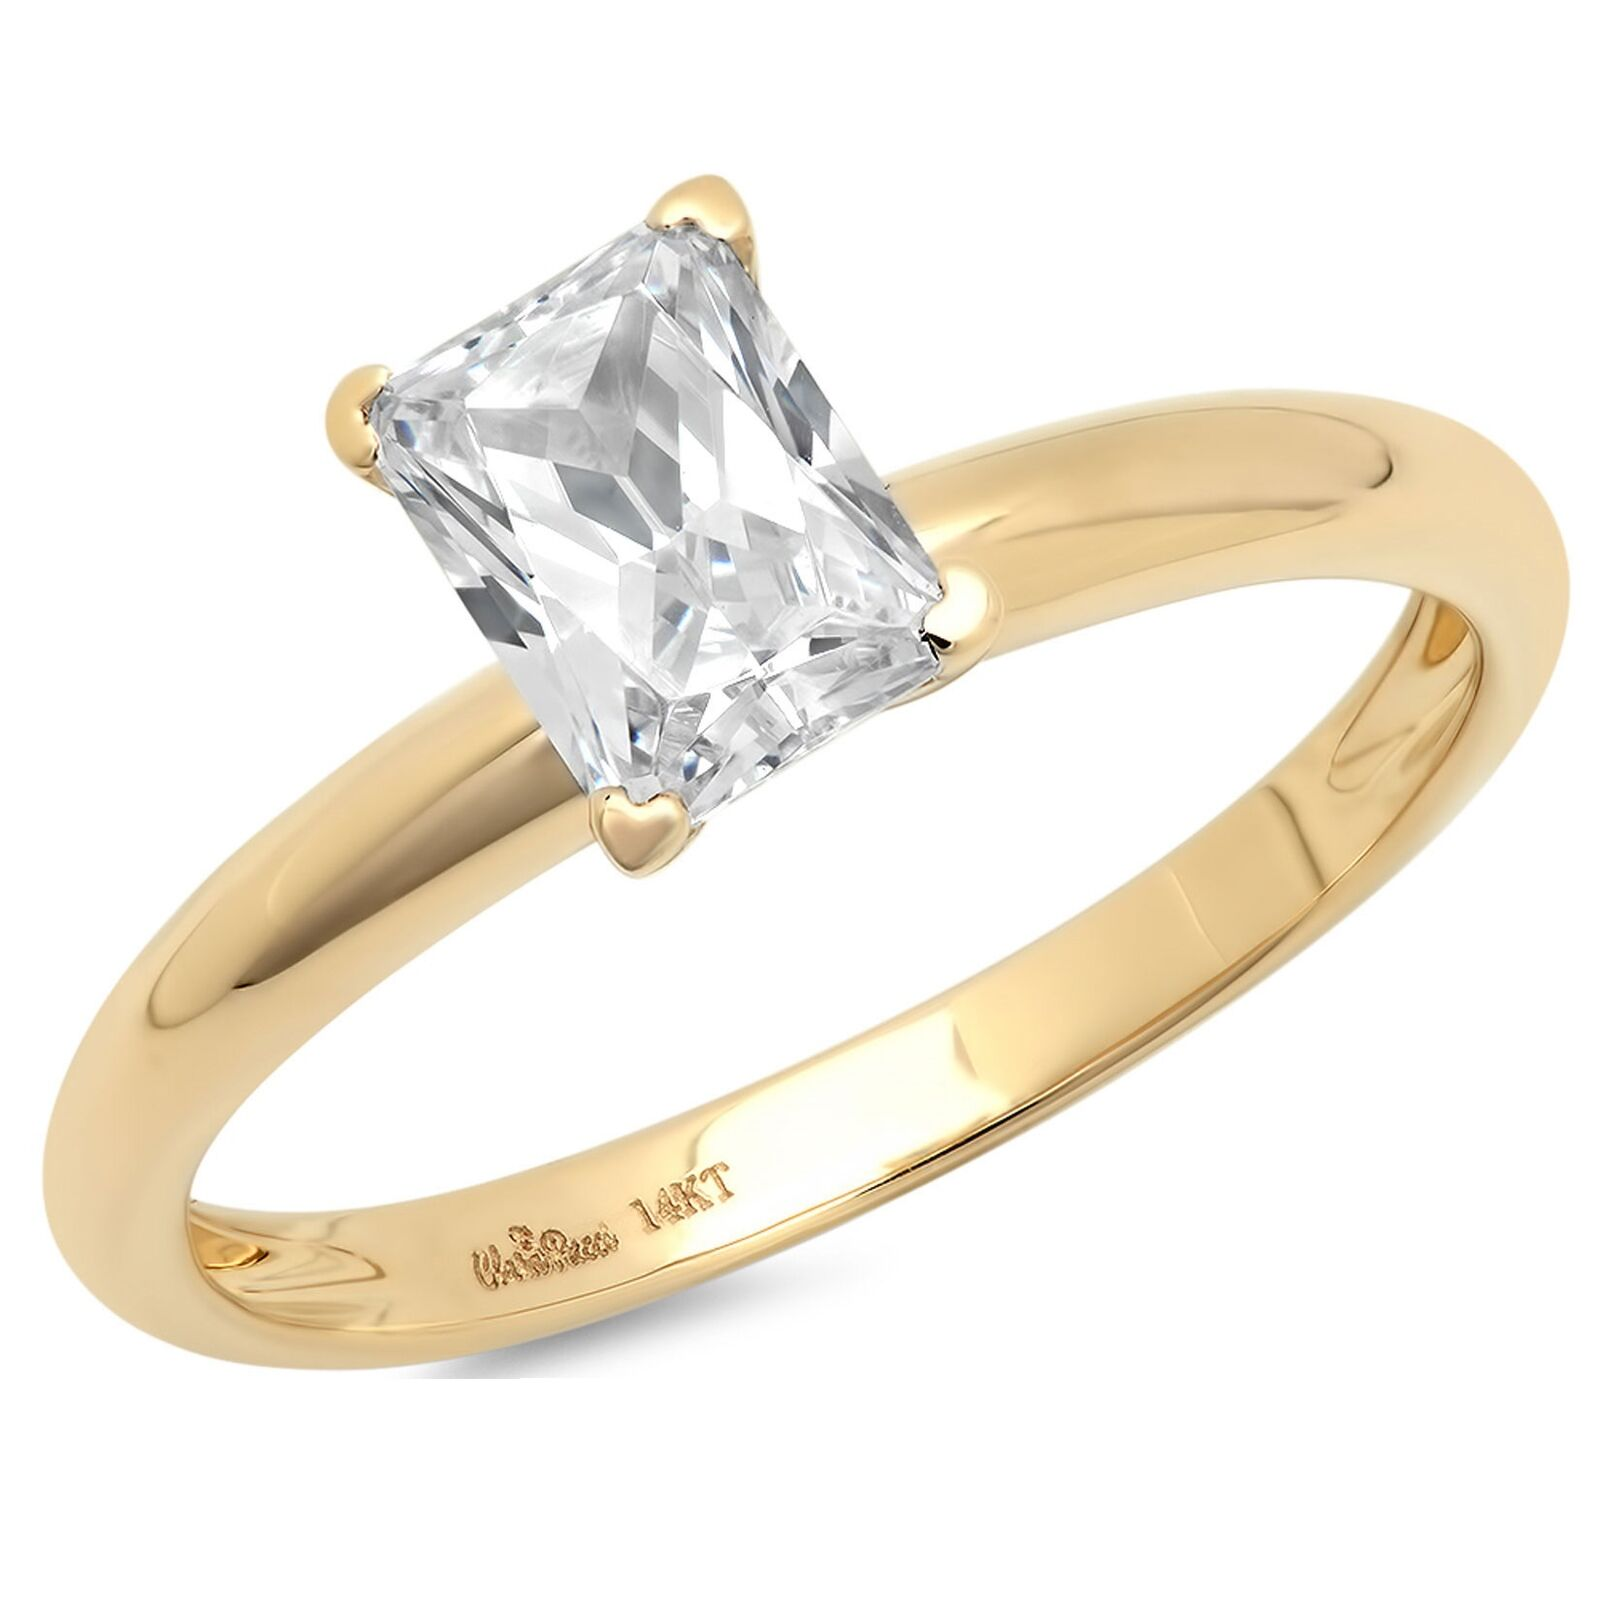 1.2ct Emerald Cut Wedding Bridal Engagement Anniversary Ring 14k Yellow gold